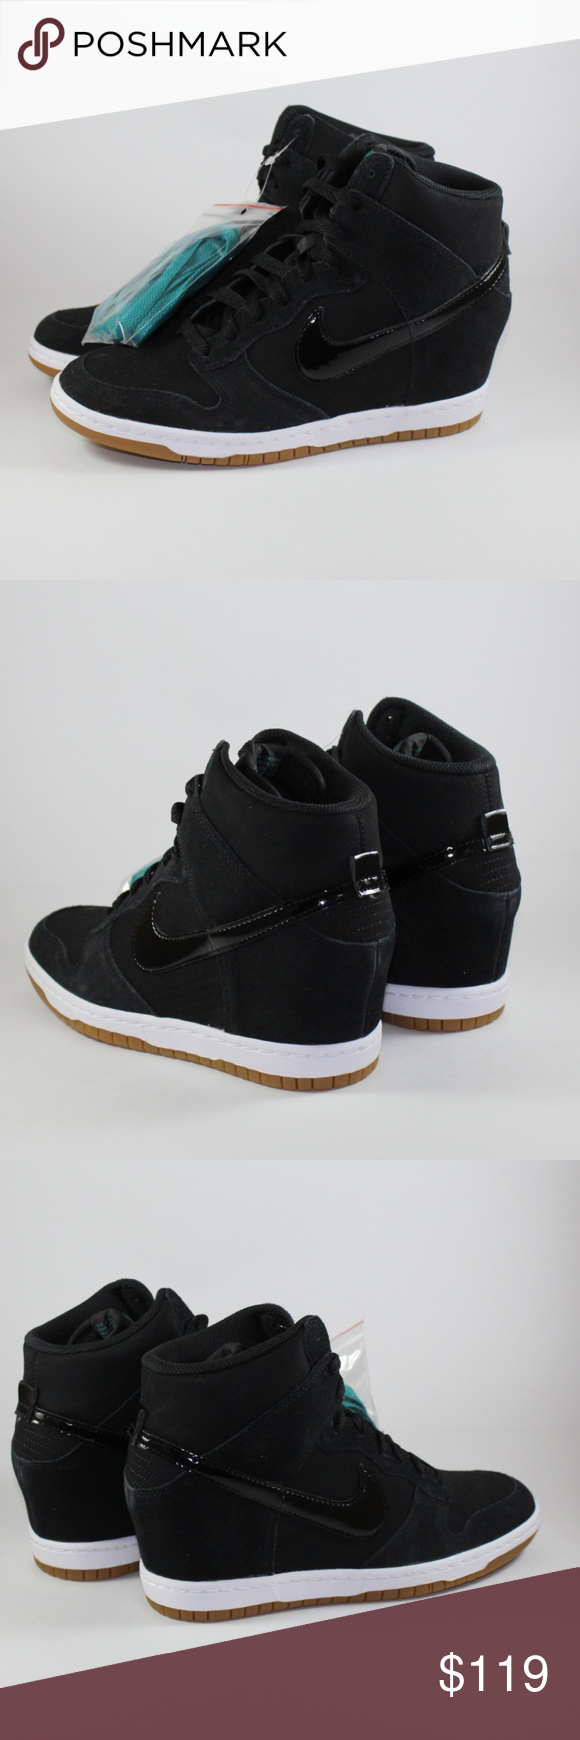 wholesale dealer 15f81 f7813 Wmns Nike Dunk Sky Hi Essential Shoes Hello and Thank you for Shopping here!!!  Up For Grabs  Wmns Nike Dunk Sky Hi Essential Shoes Black Gum Wedge Heel  Nike ...